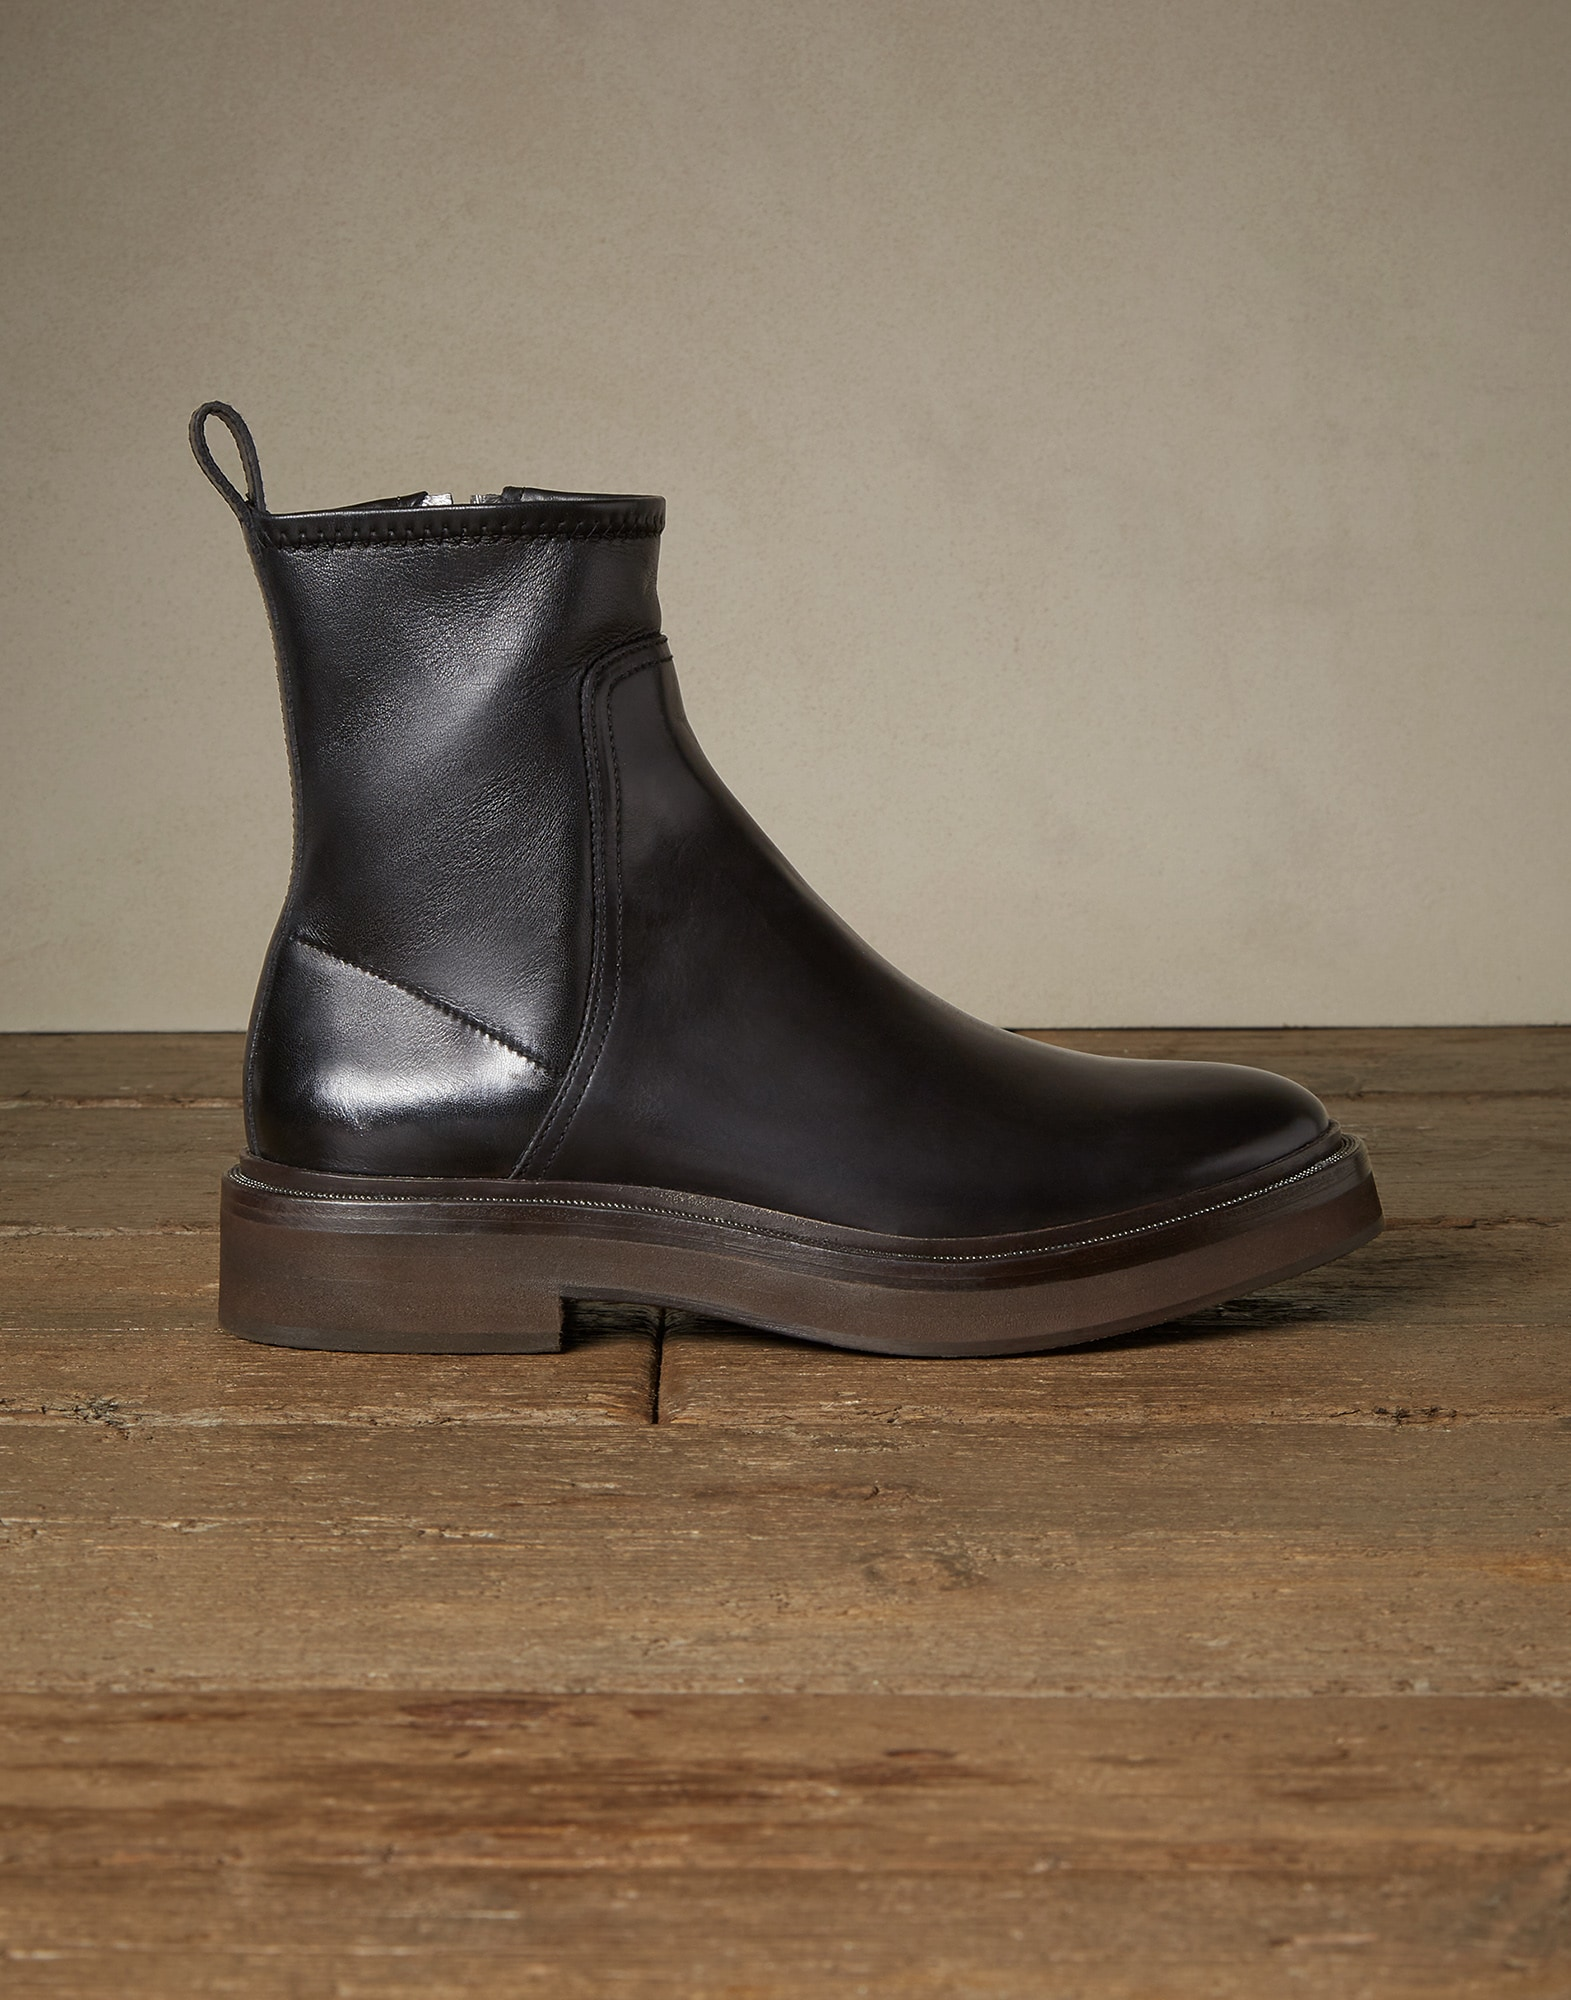 High-Boots Black Woman 3 - Brunello Cucinelli